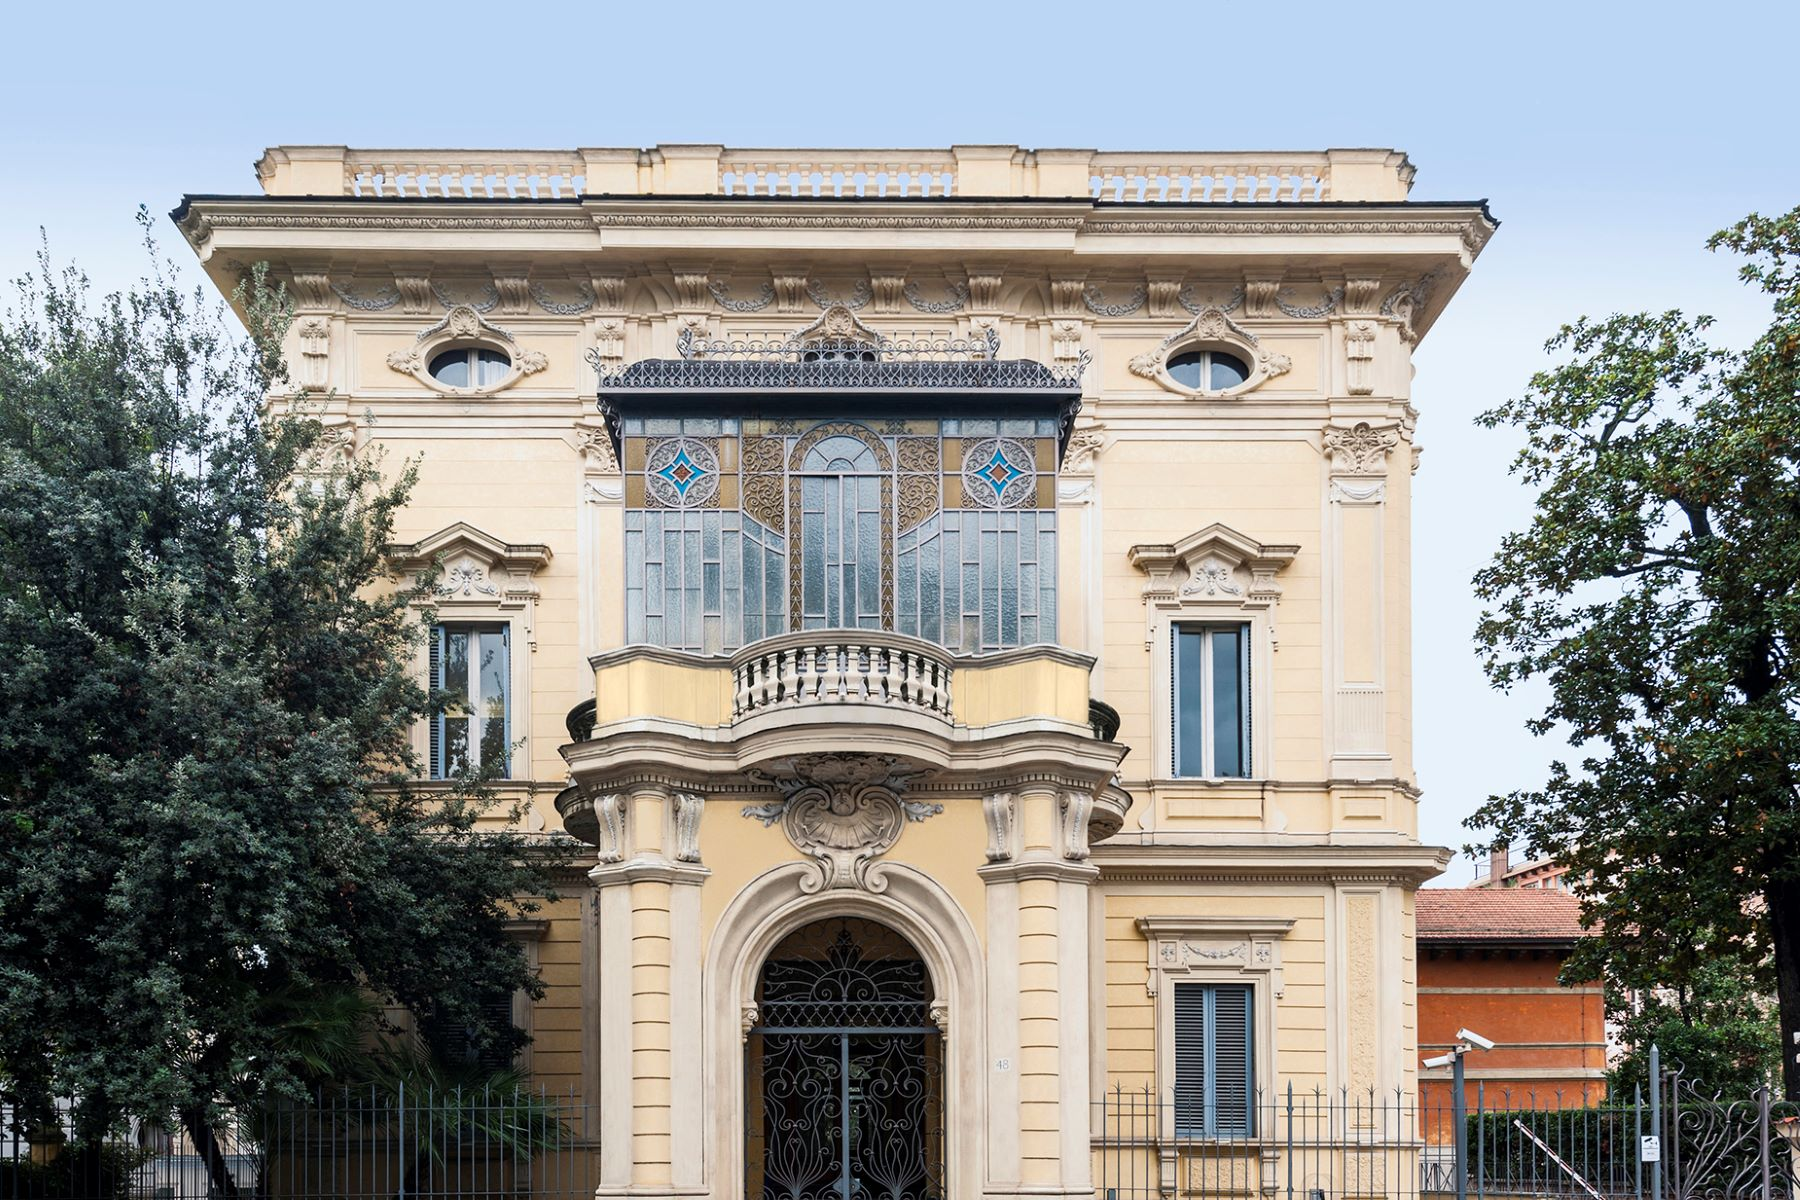 Single Family Home for Sale at Majestic Art Deco Villa in Rome's City Center Via Piemonte Rome, 00187 Italy